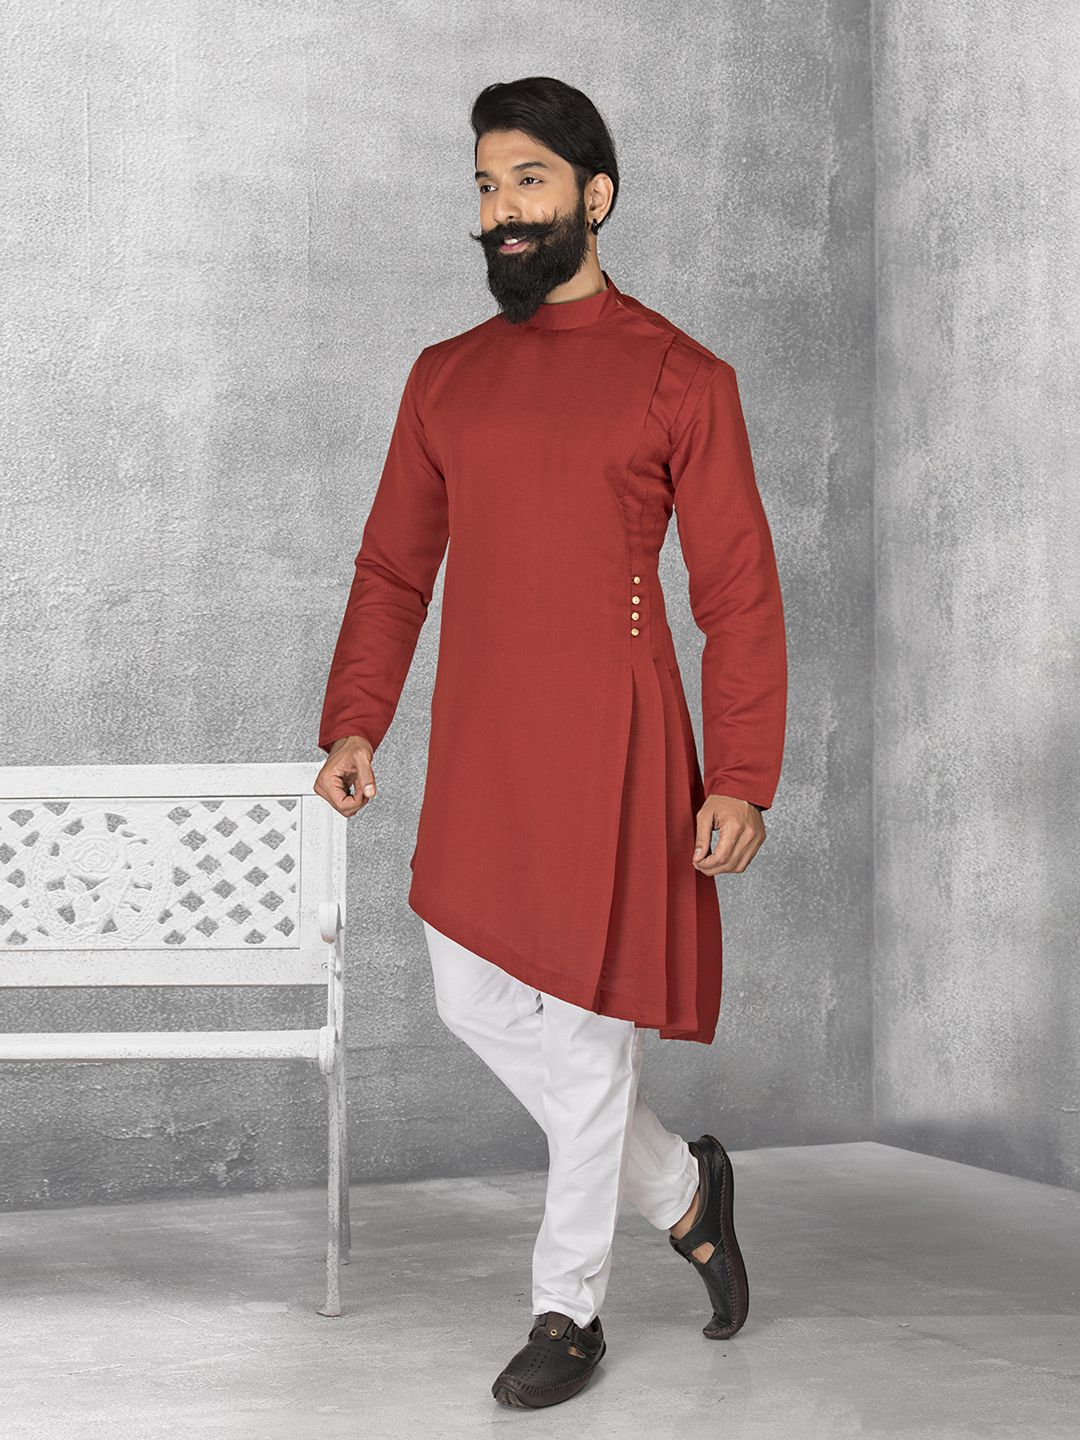 a1bfbe0aea5 Shop Maroon terry rayon plain kurta suit online from G3fashion India. Brand  - G3, Product code - G3-MKS0523, Price - 4295, Color - Maroon, Fabric -  Terry ...